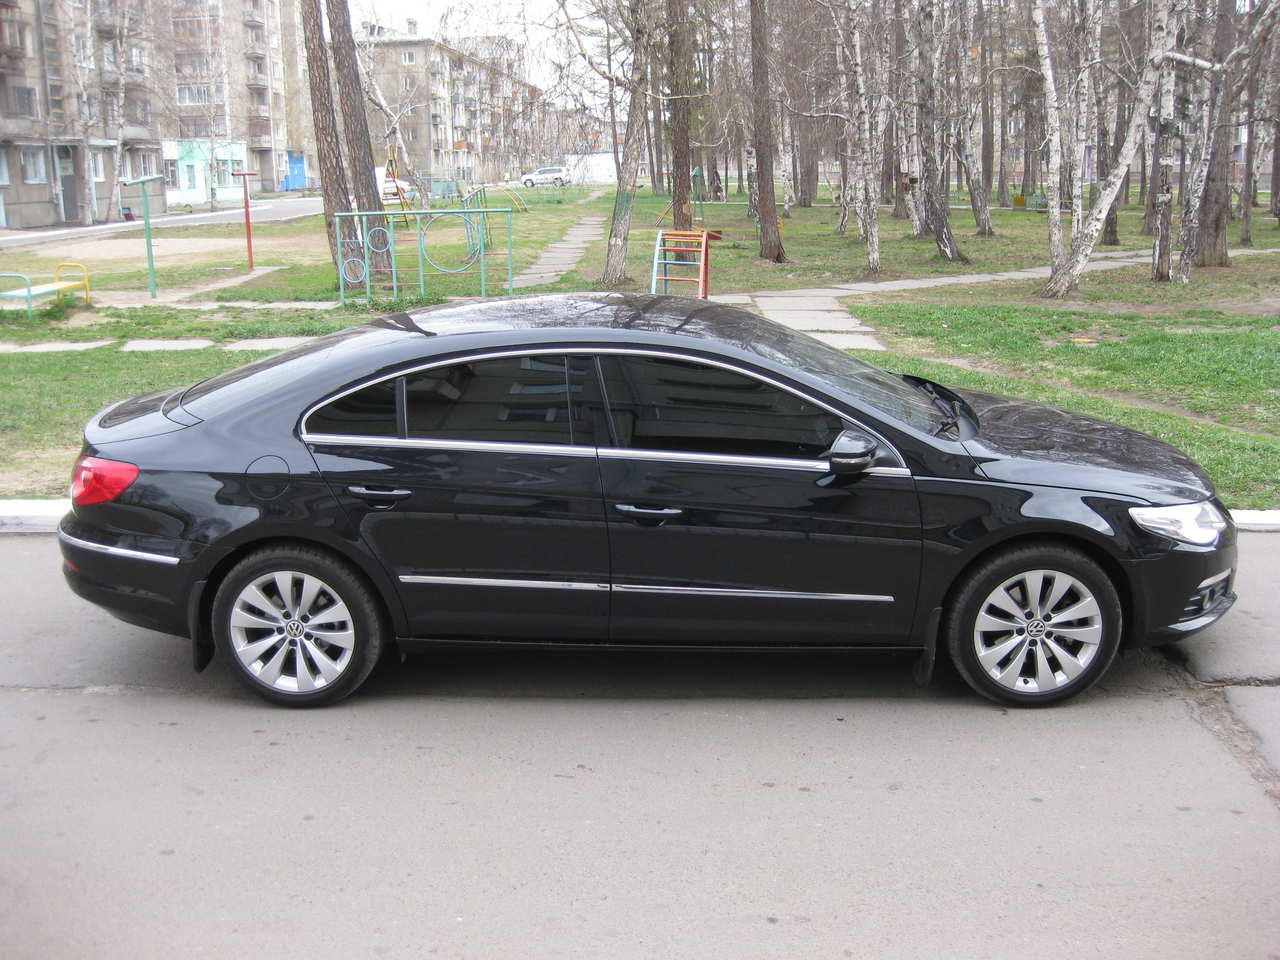 2009 volkswagen passat cc photos 1 8 gasoline ff. Black Bedroom Furniture Sets. Home Design Ideas